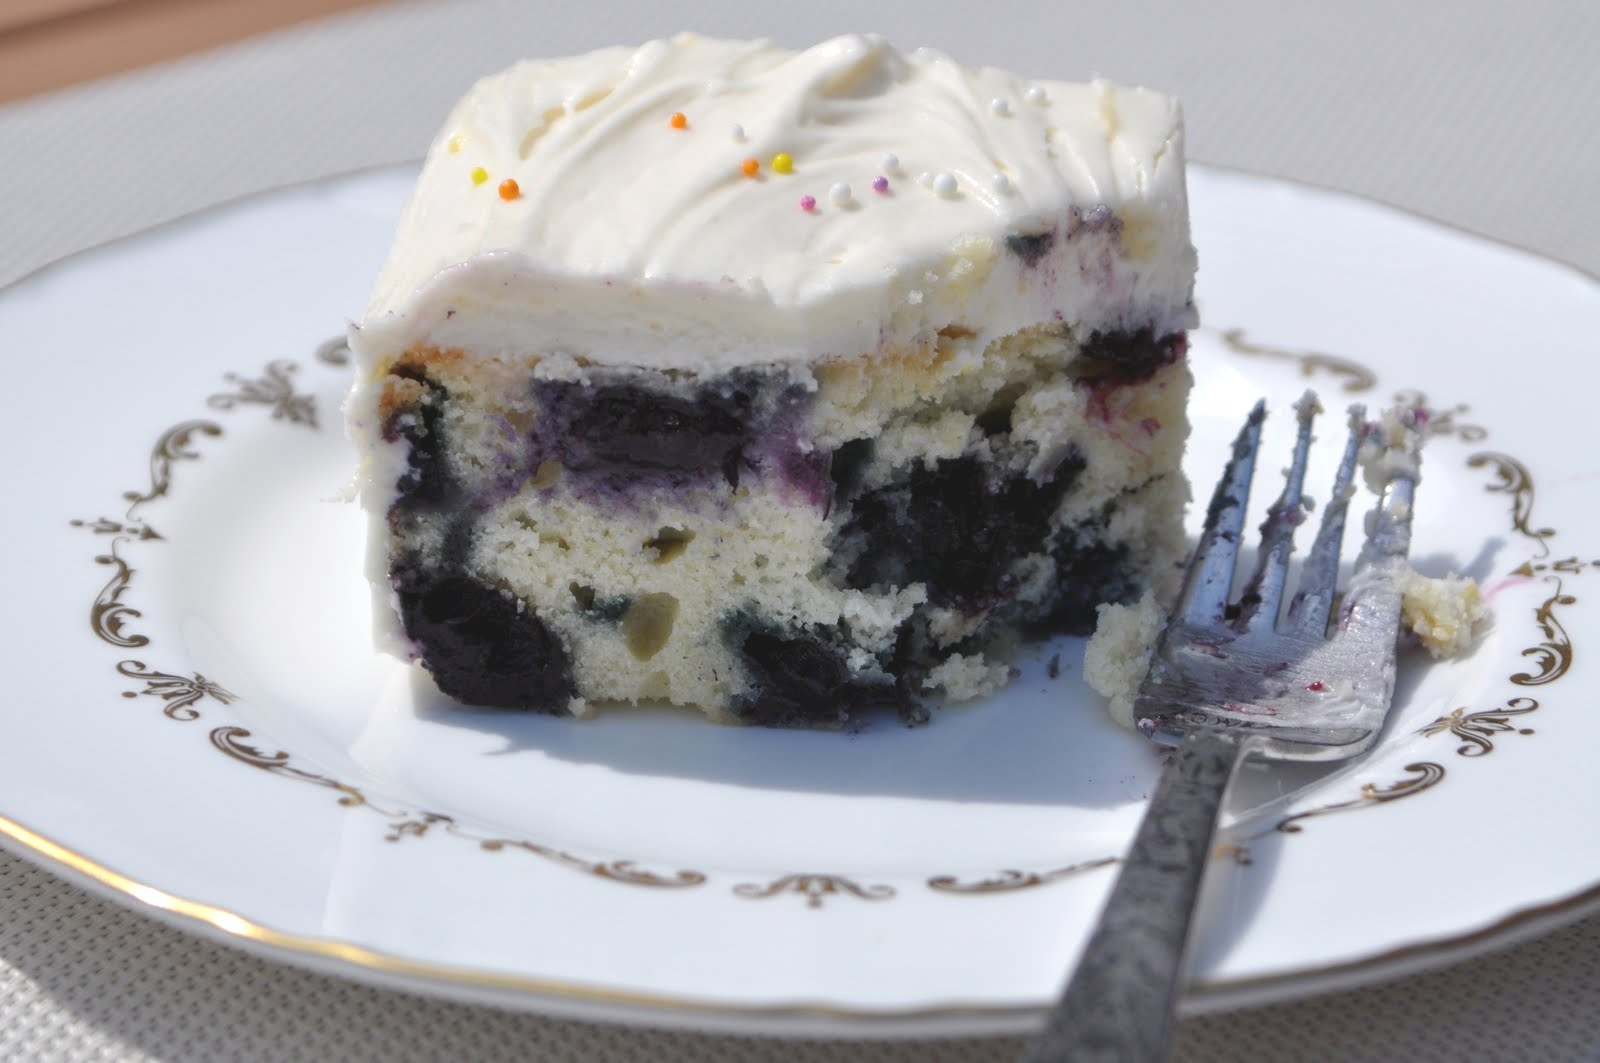 Impeccable Taste: Blueberry Tea Cake